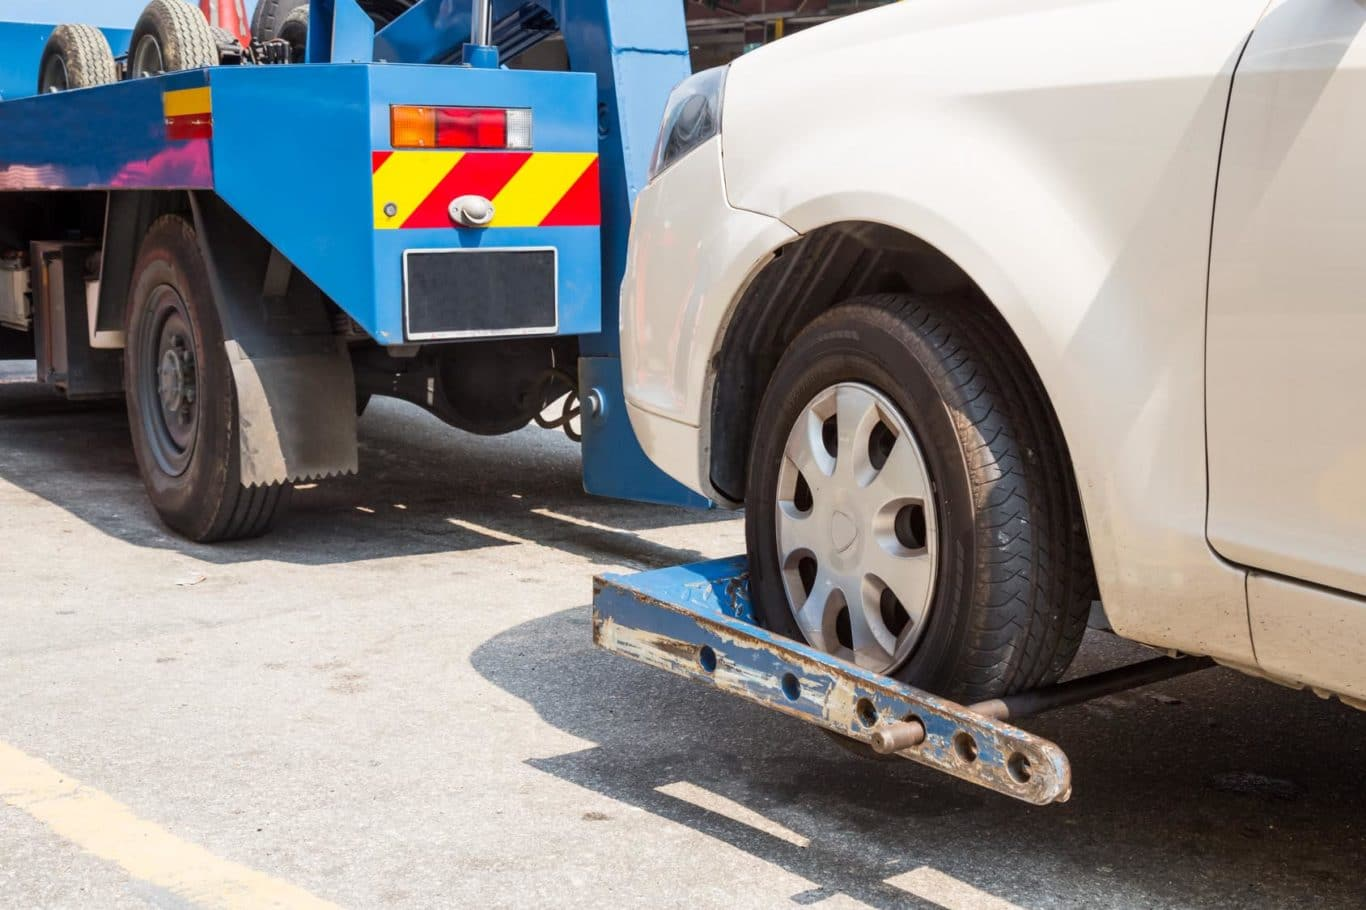 Tullyallen, County Louth expert Towing And Recovery Dublin services